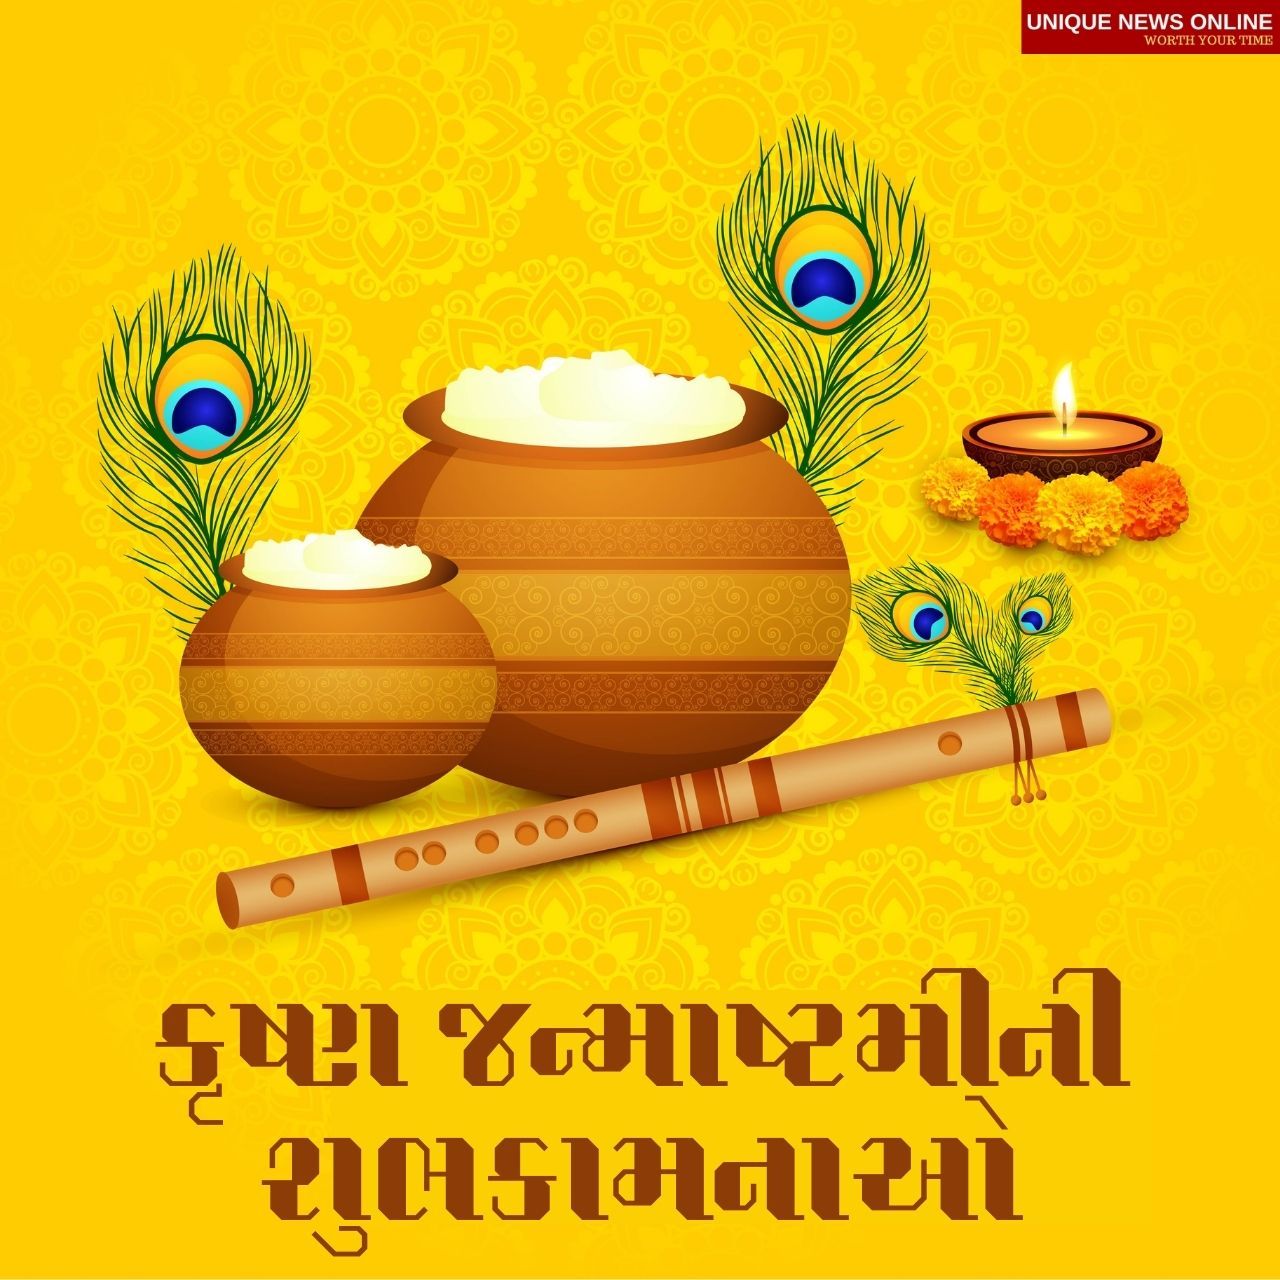 Happy Krishna Janmashtami 2021 Gujarati Wishes, Messages, Quotes, HD Images, Messages, Greetings, Facebook, and WhatsApp Status to share